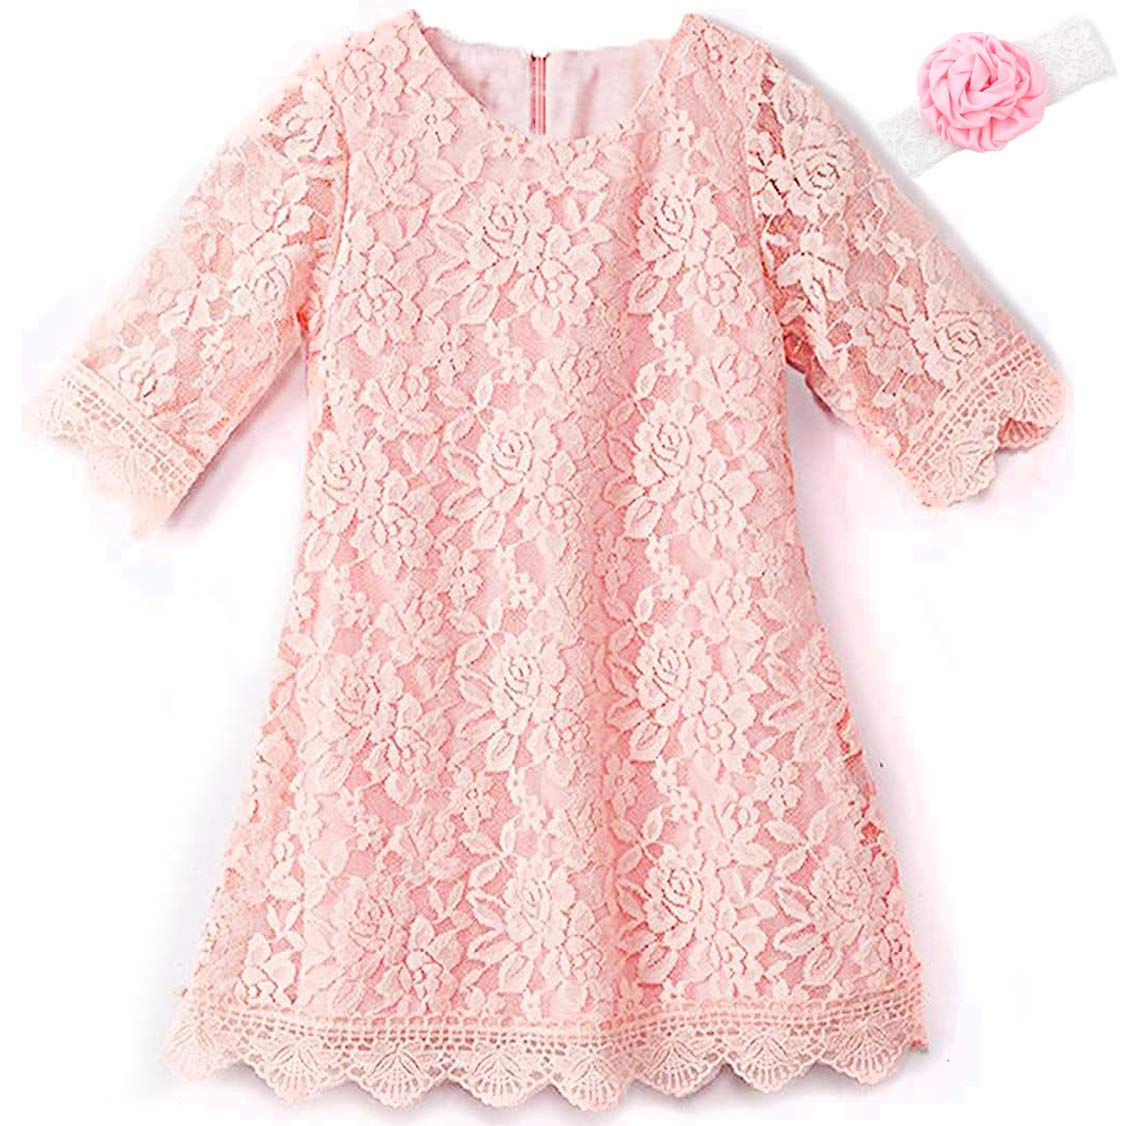 KISSOURBABY Girls Lace Flower Dress Casual Crew Neck Floral A-Line Party Dress